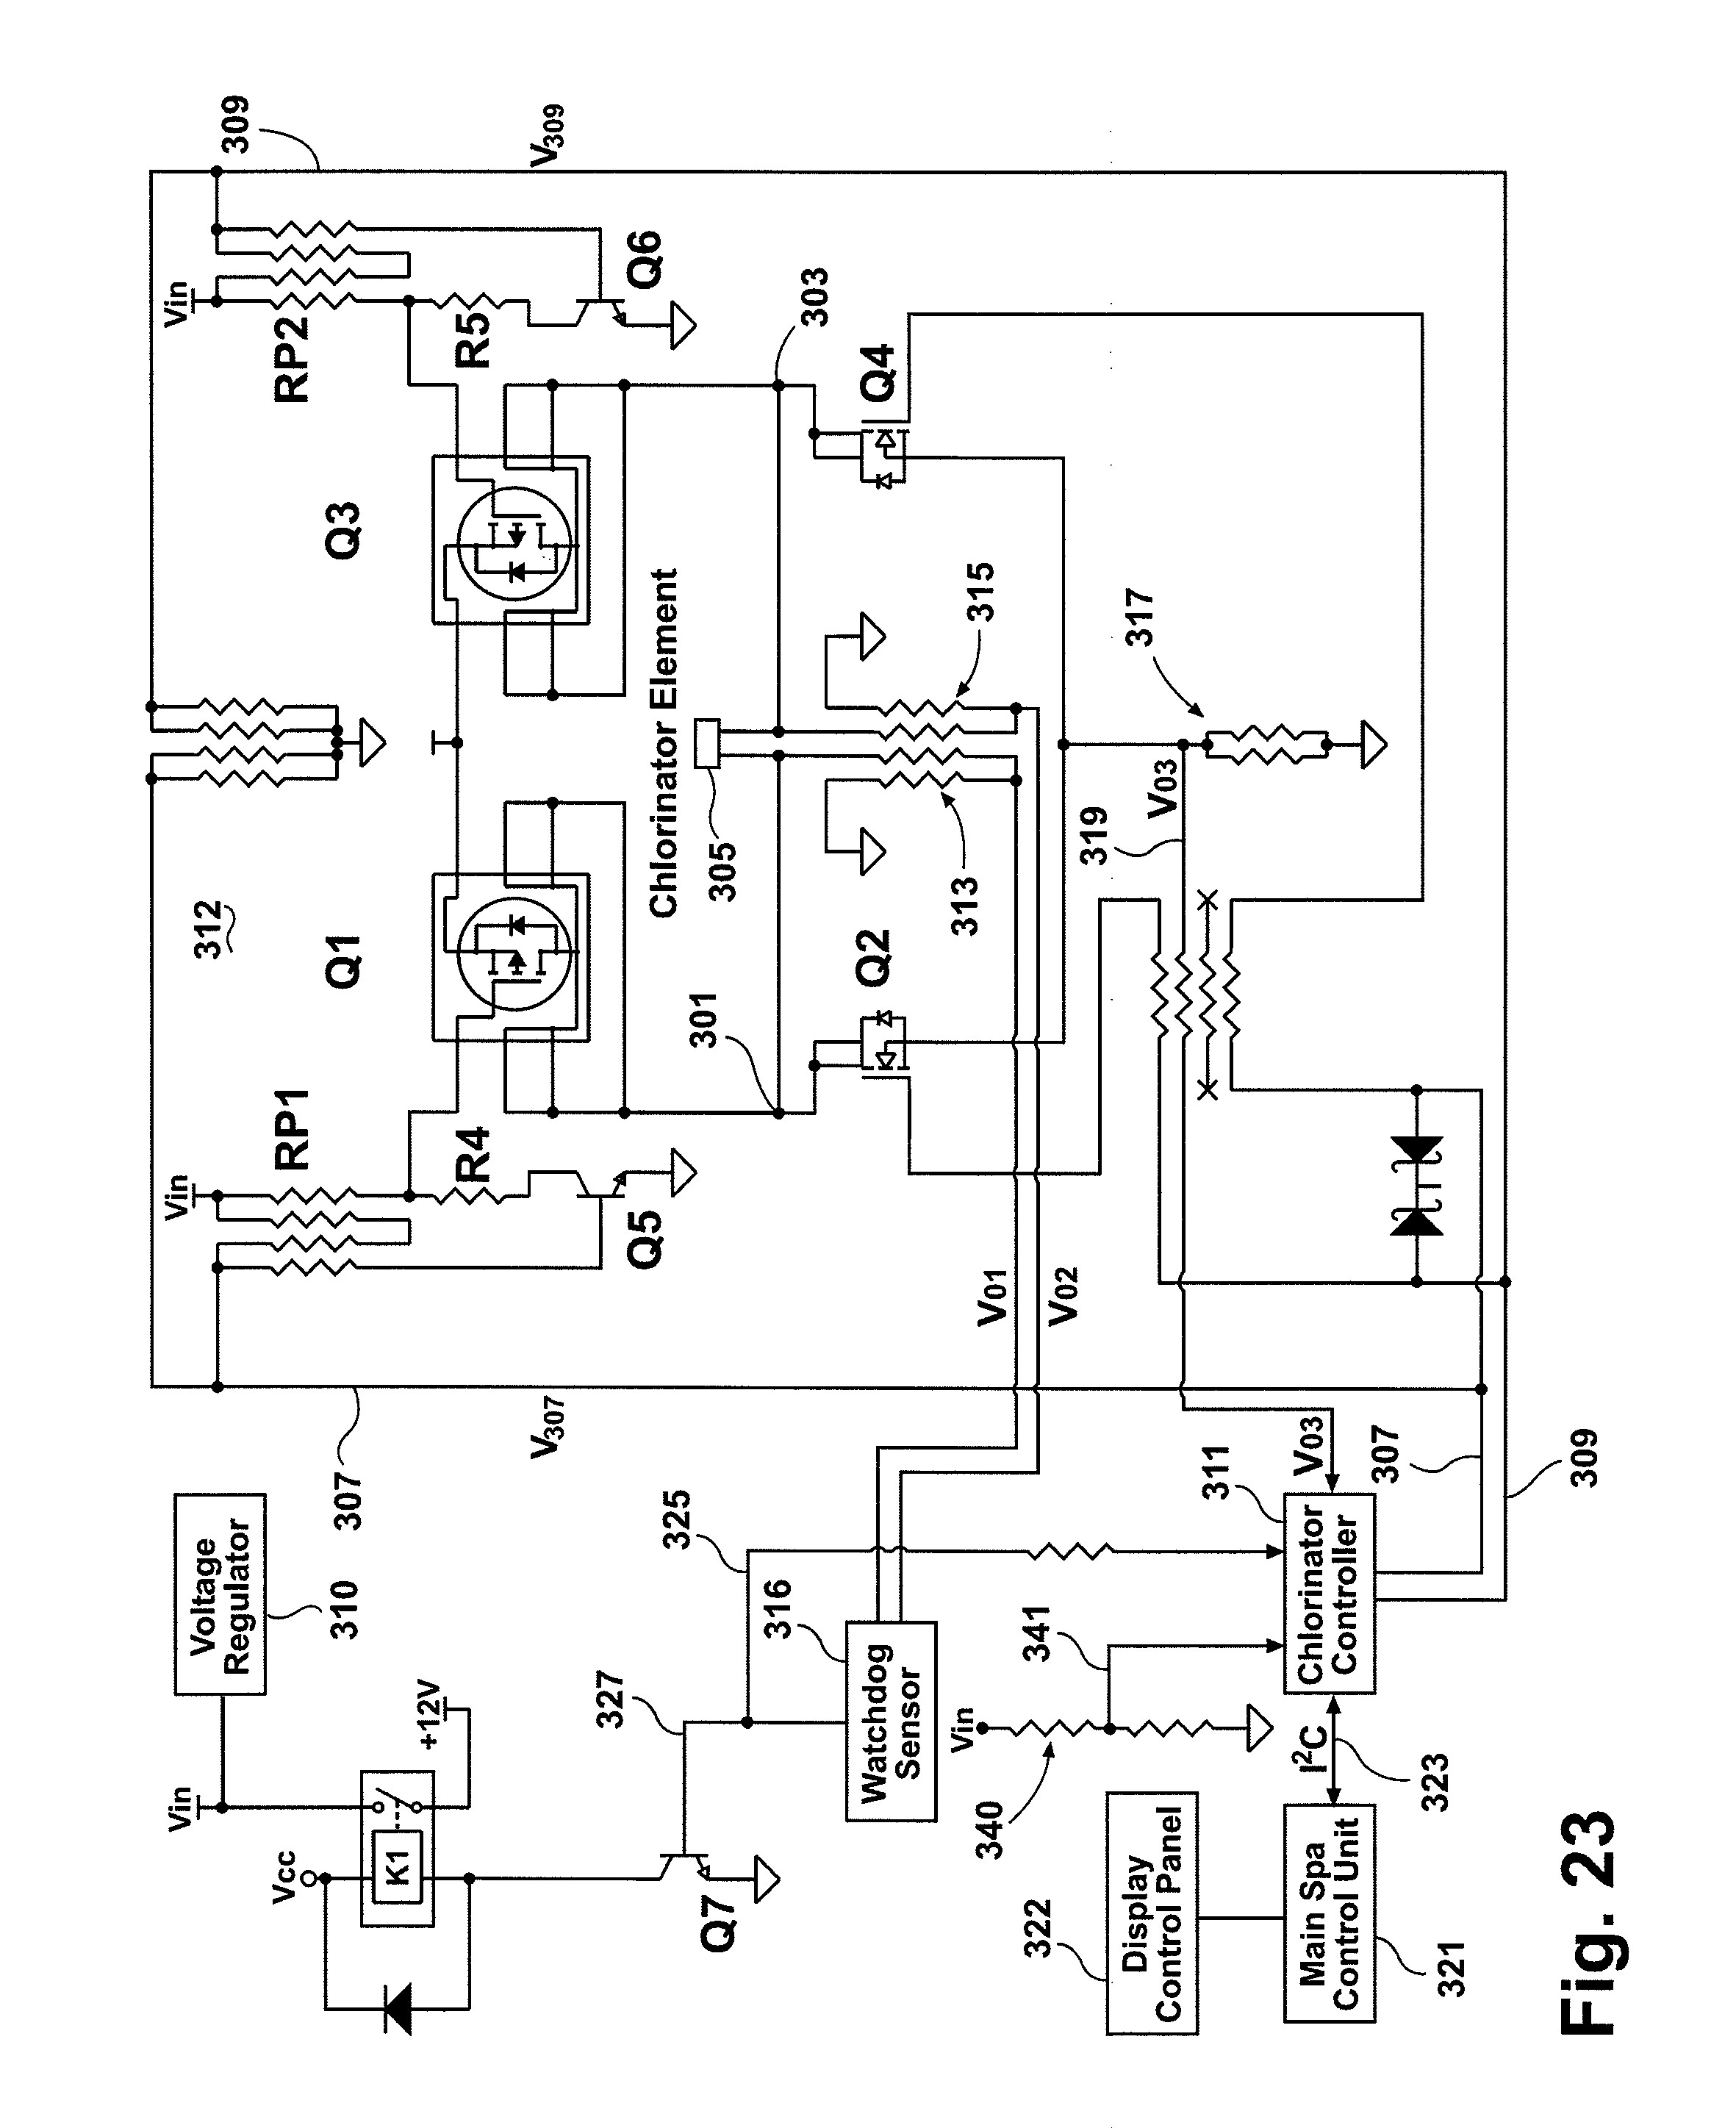 Jacuzzi Hot Tub Wiring Diagram from wholefoodsonabudget.com